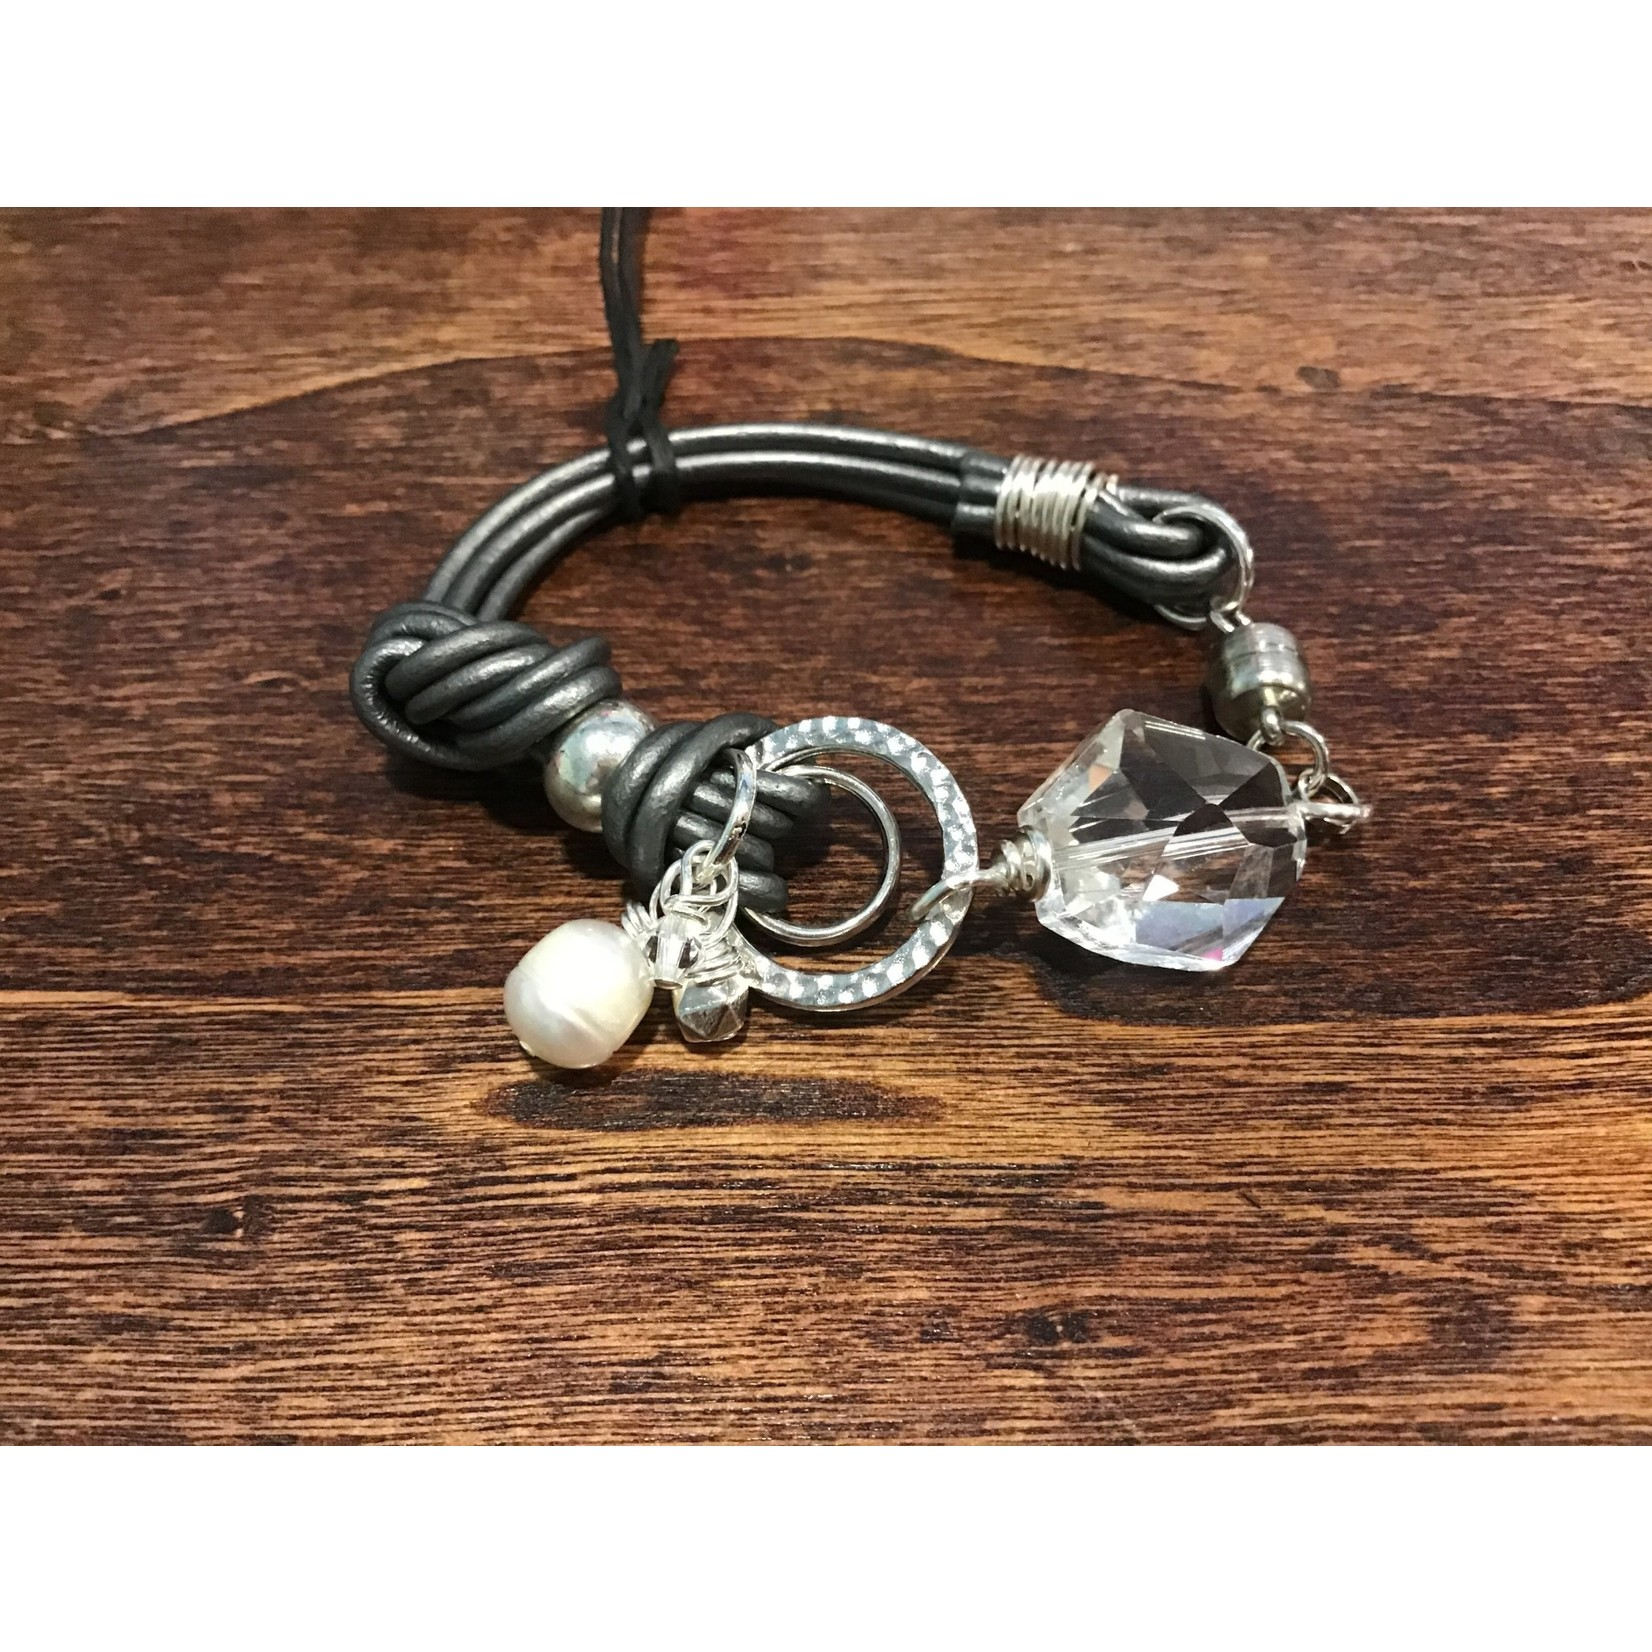 Janine Zink Jewelry by Janine- 13 Abstract Bracelet with Magnetic Clasp- Metallic Grey